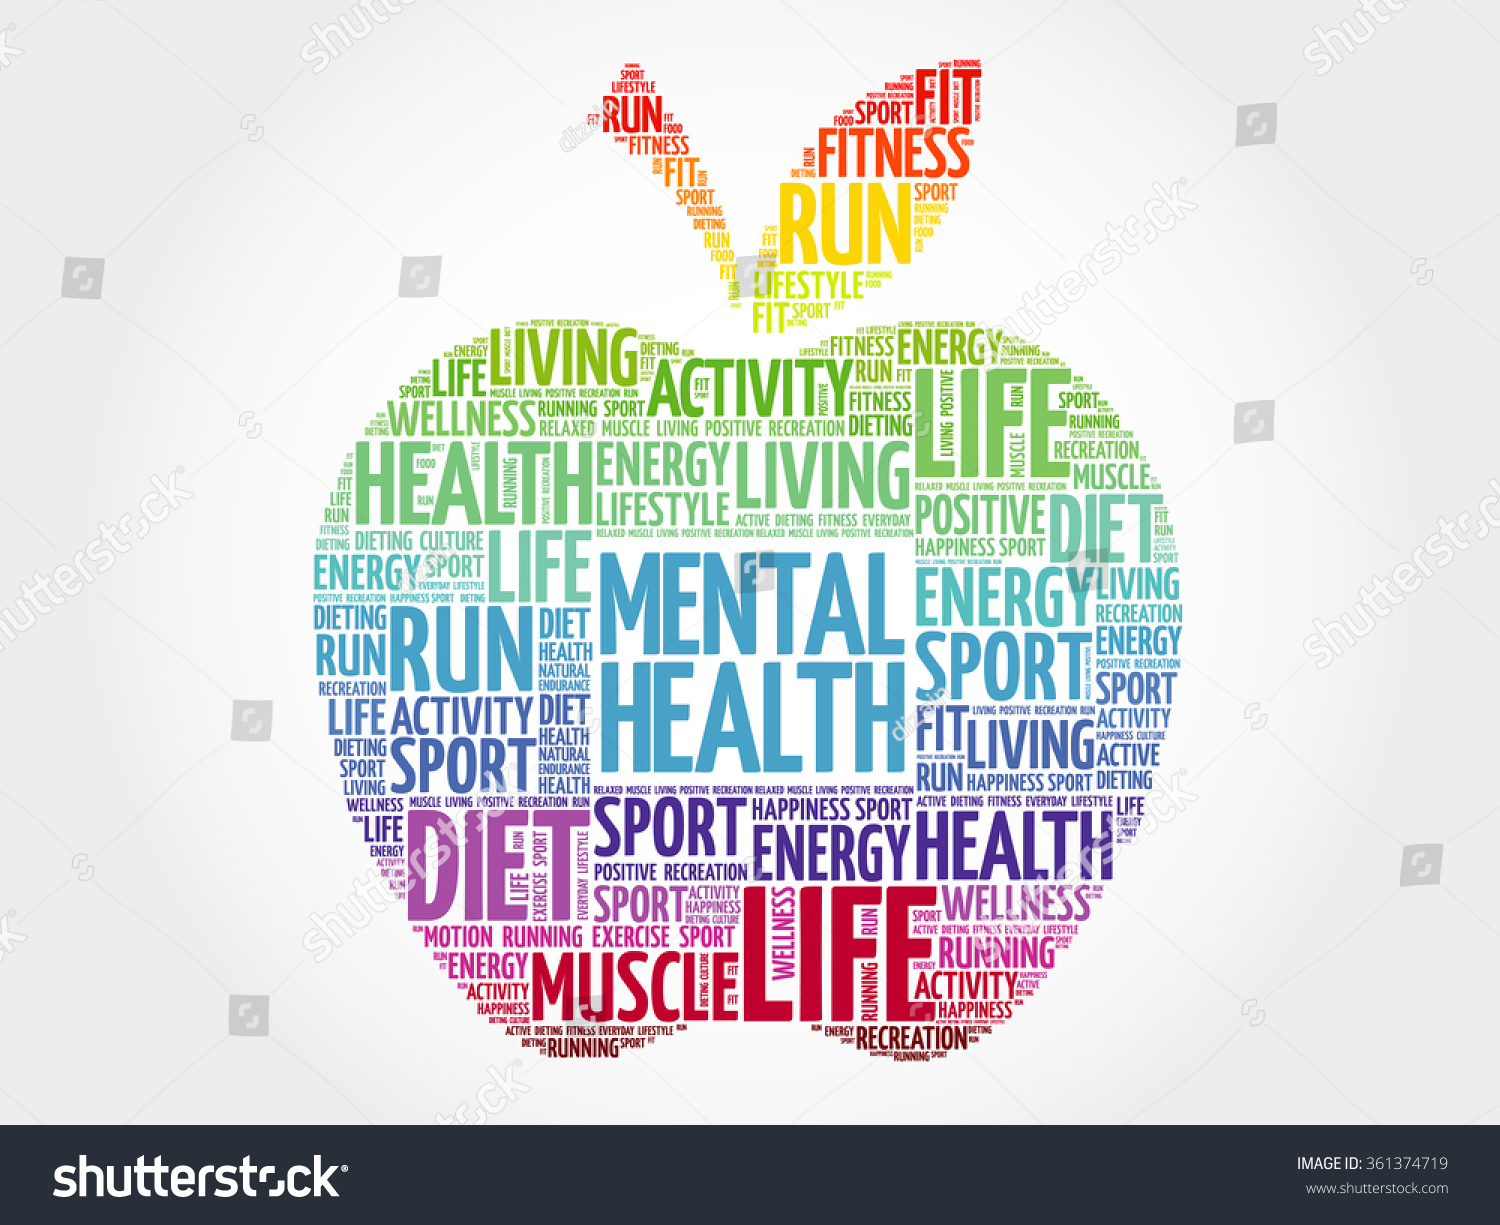 stock-vector-mental-health-apple-word-cloud-health-concept-361374719.jpg